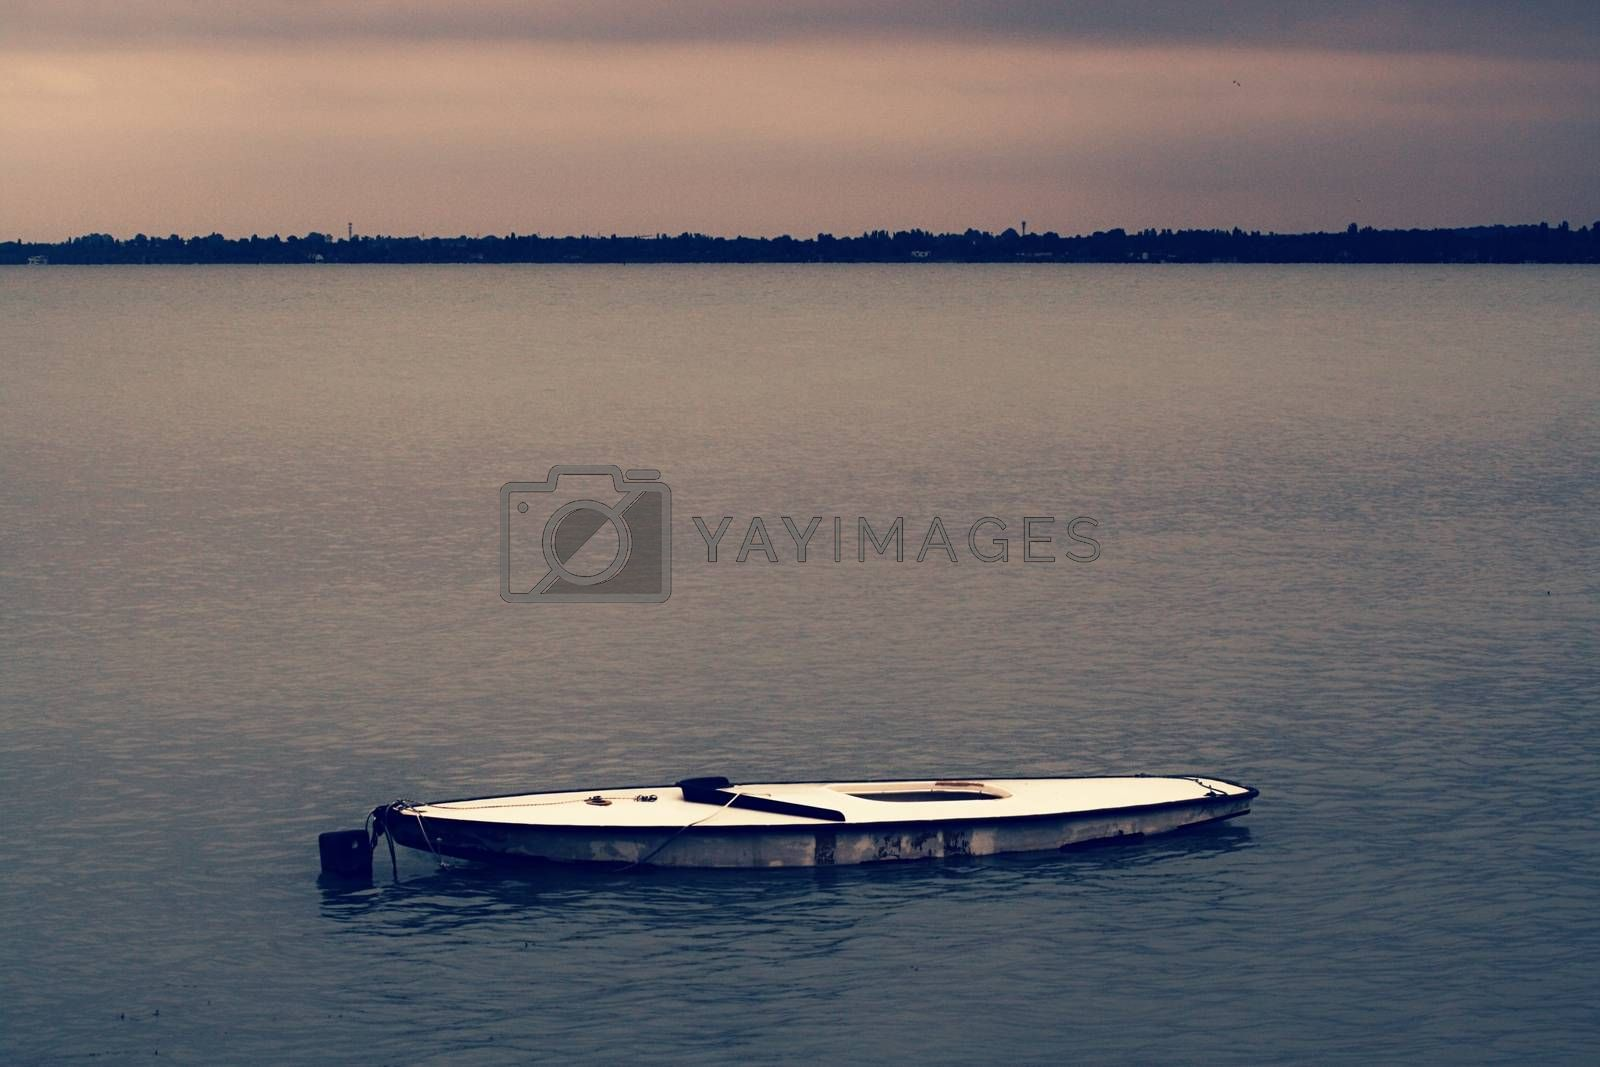 Royalty free image of A small boat in a large body of water by balage941